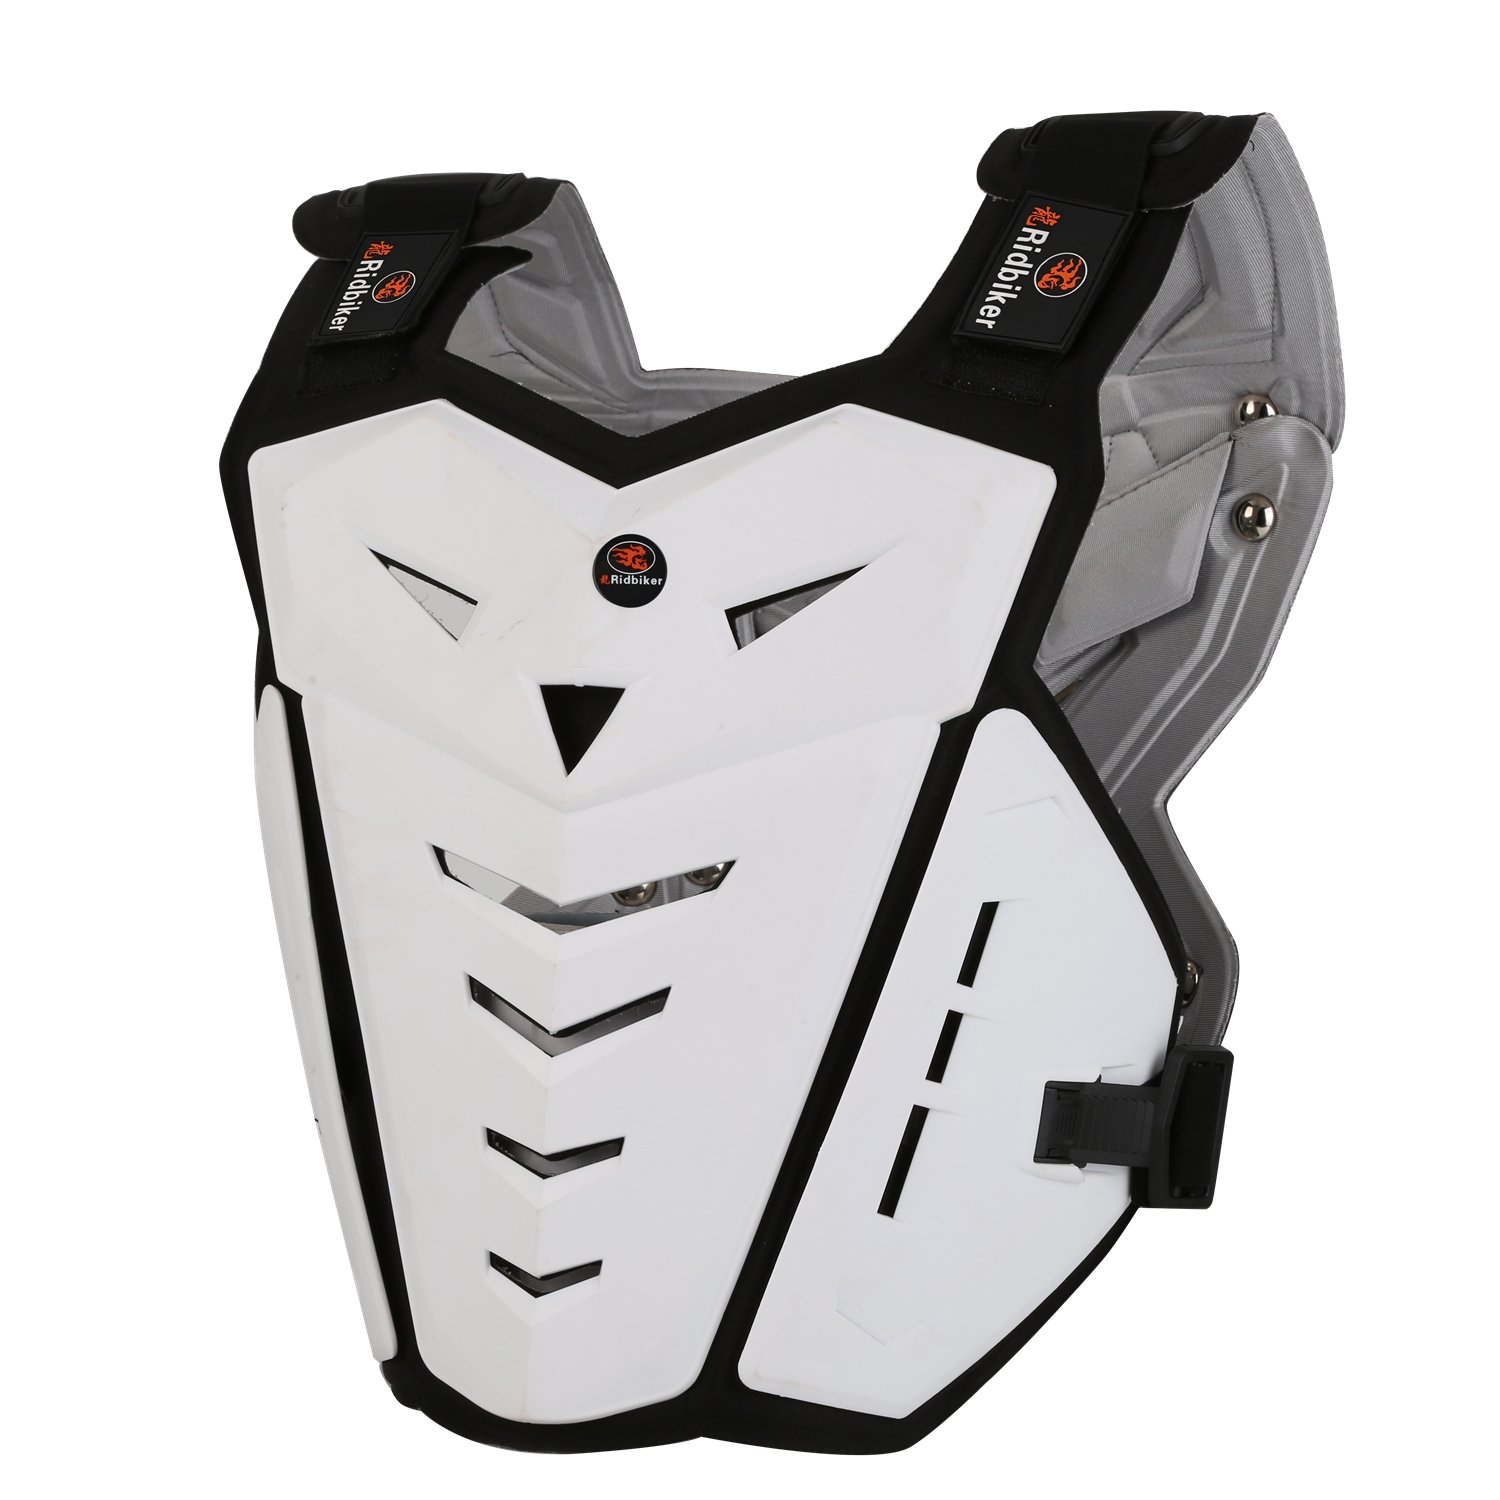 RIDBIKER Motorcycle Armor Vest Motorcycle Riding Chest Armor Back Protector Armor Motocross Off-Road Racing Vest,White